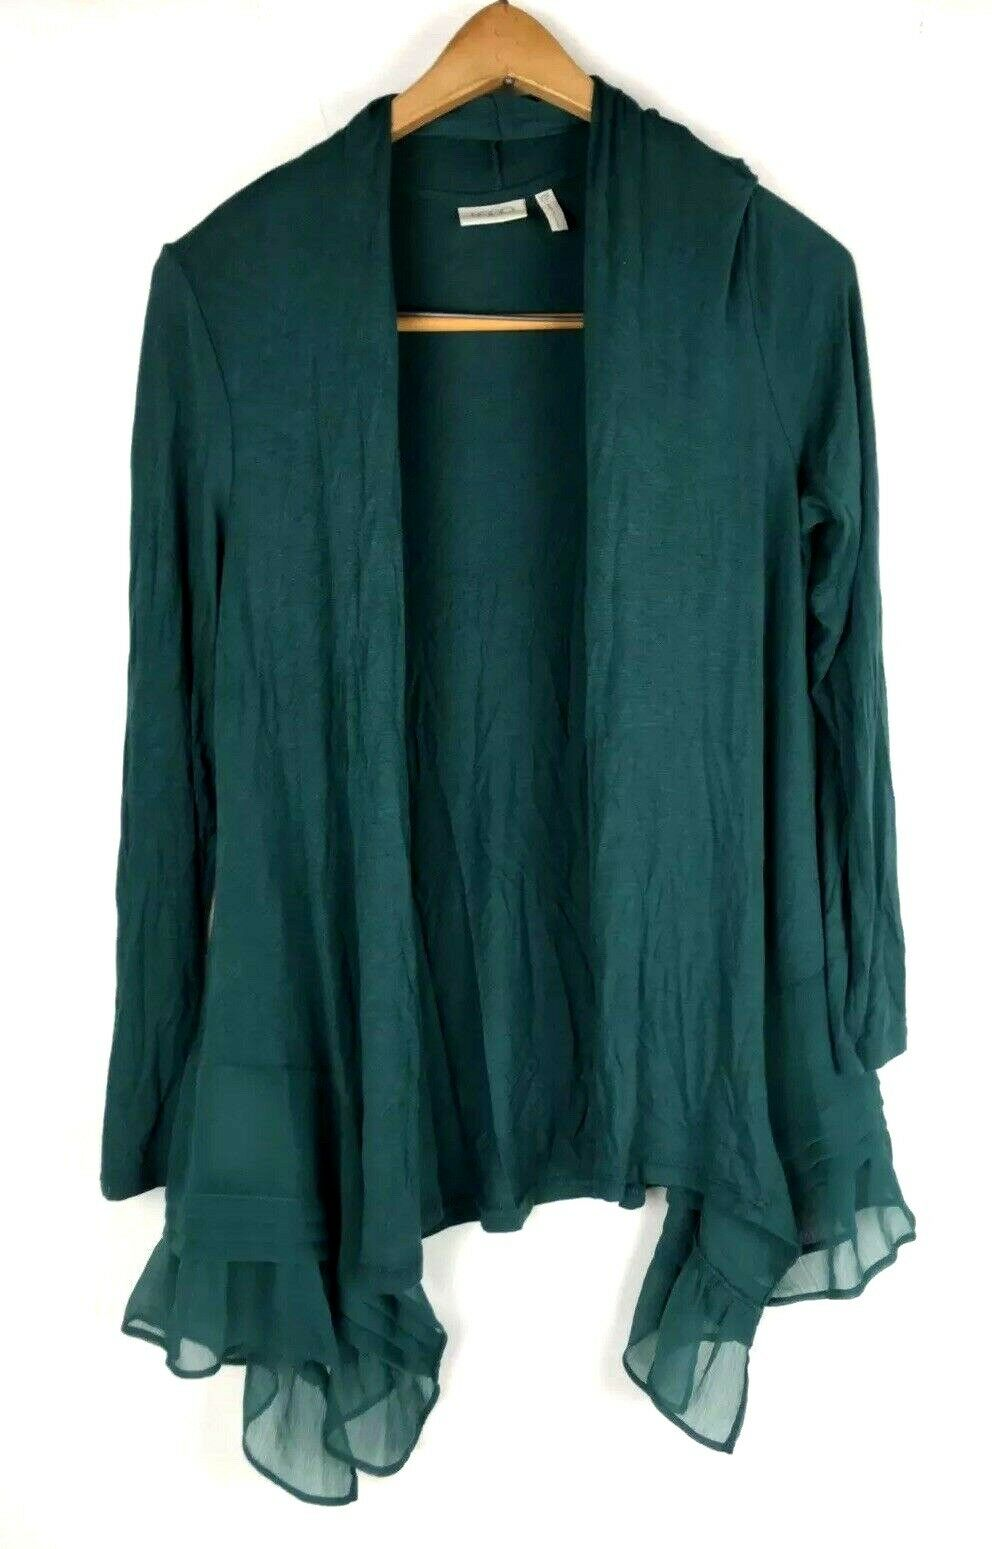 LOGO by Lori goldstein Open Front Cardigan Petite Size XSP Teal bluee Draped